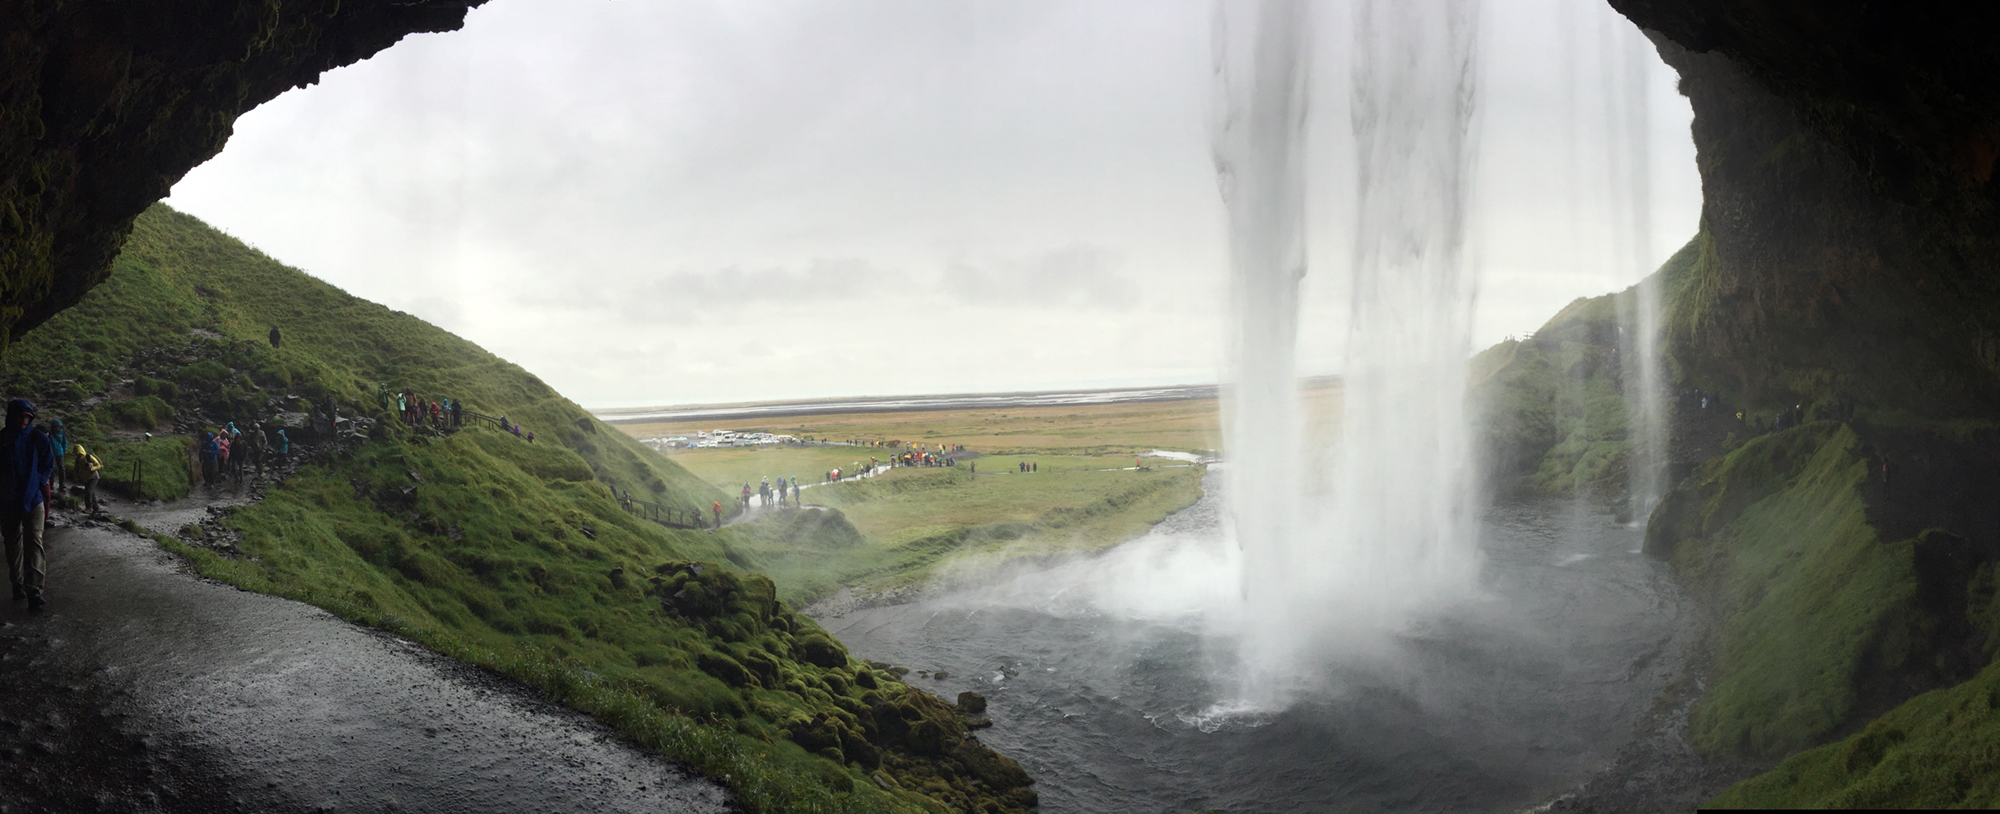 Deep in the bowels of Seljalandsfoss. It was a surreal experience to stand behind this waterfall. Very primal. Recommended. SELJALANDSFOSS DETAIL II was made of the water cascading in the far right of this panoramic. Yes, the camera and I got soaked.